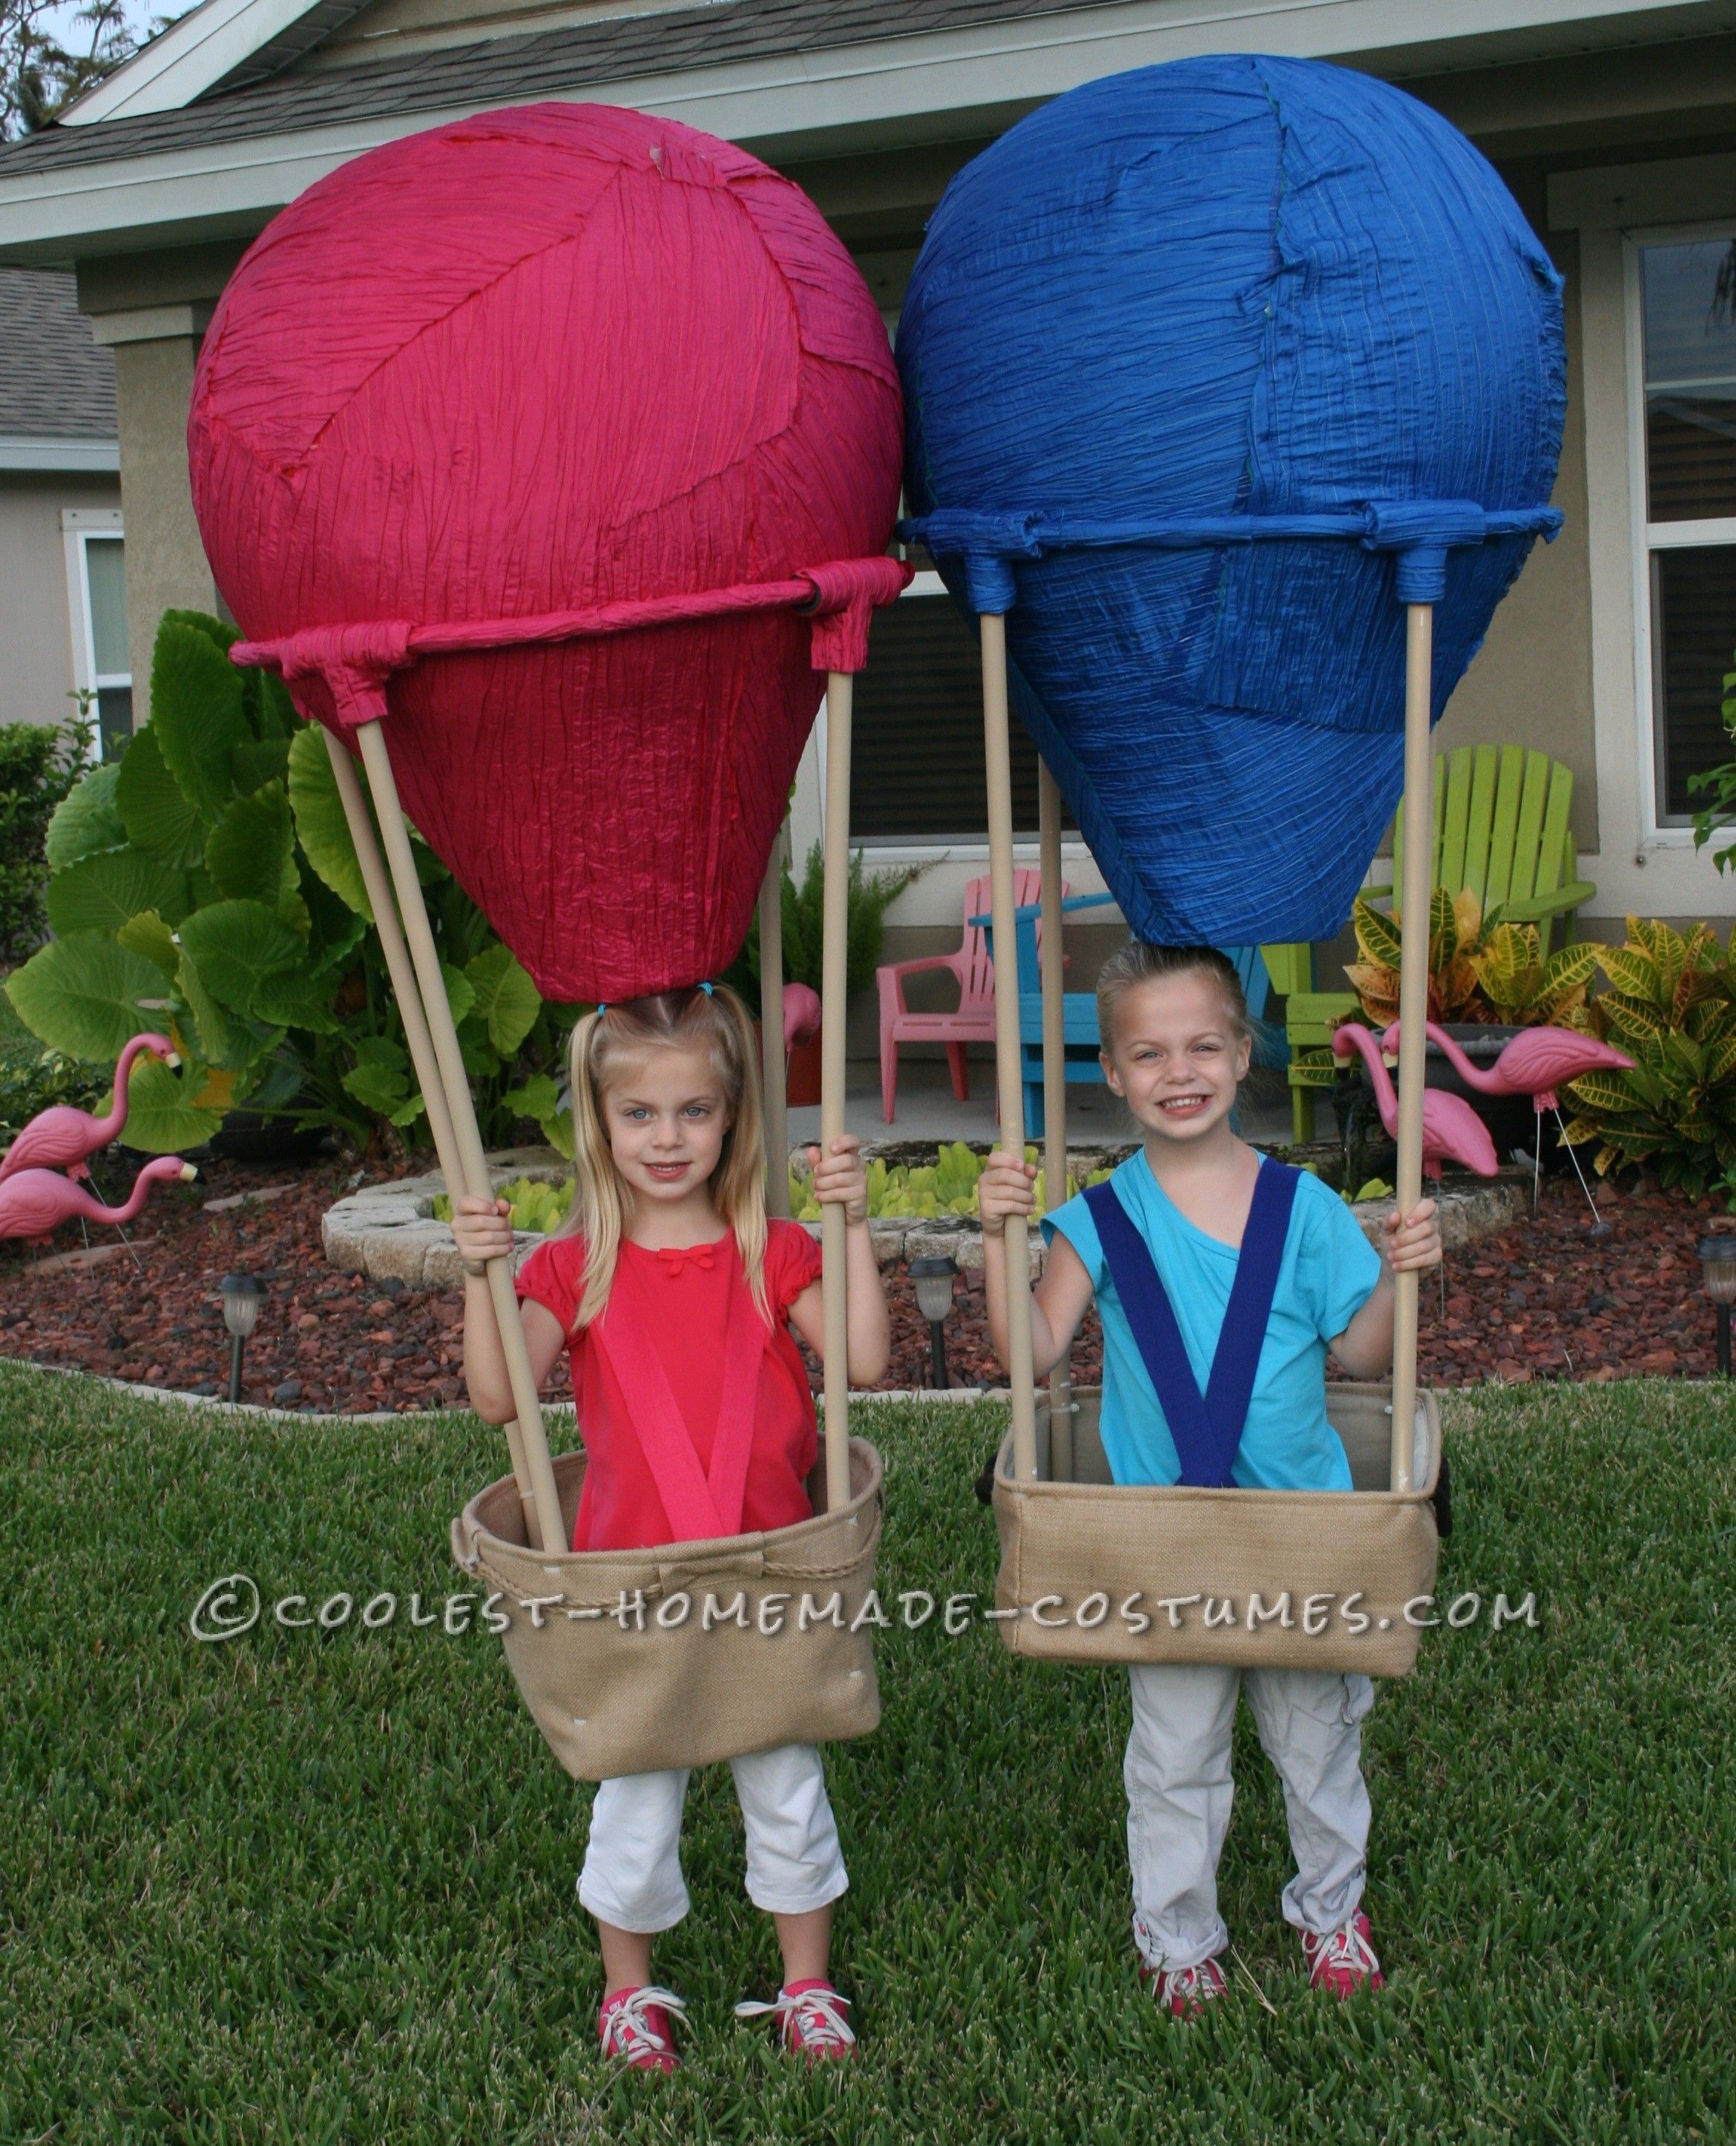 Coolest homemade costumes on pinterest